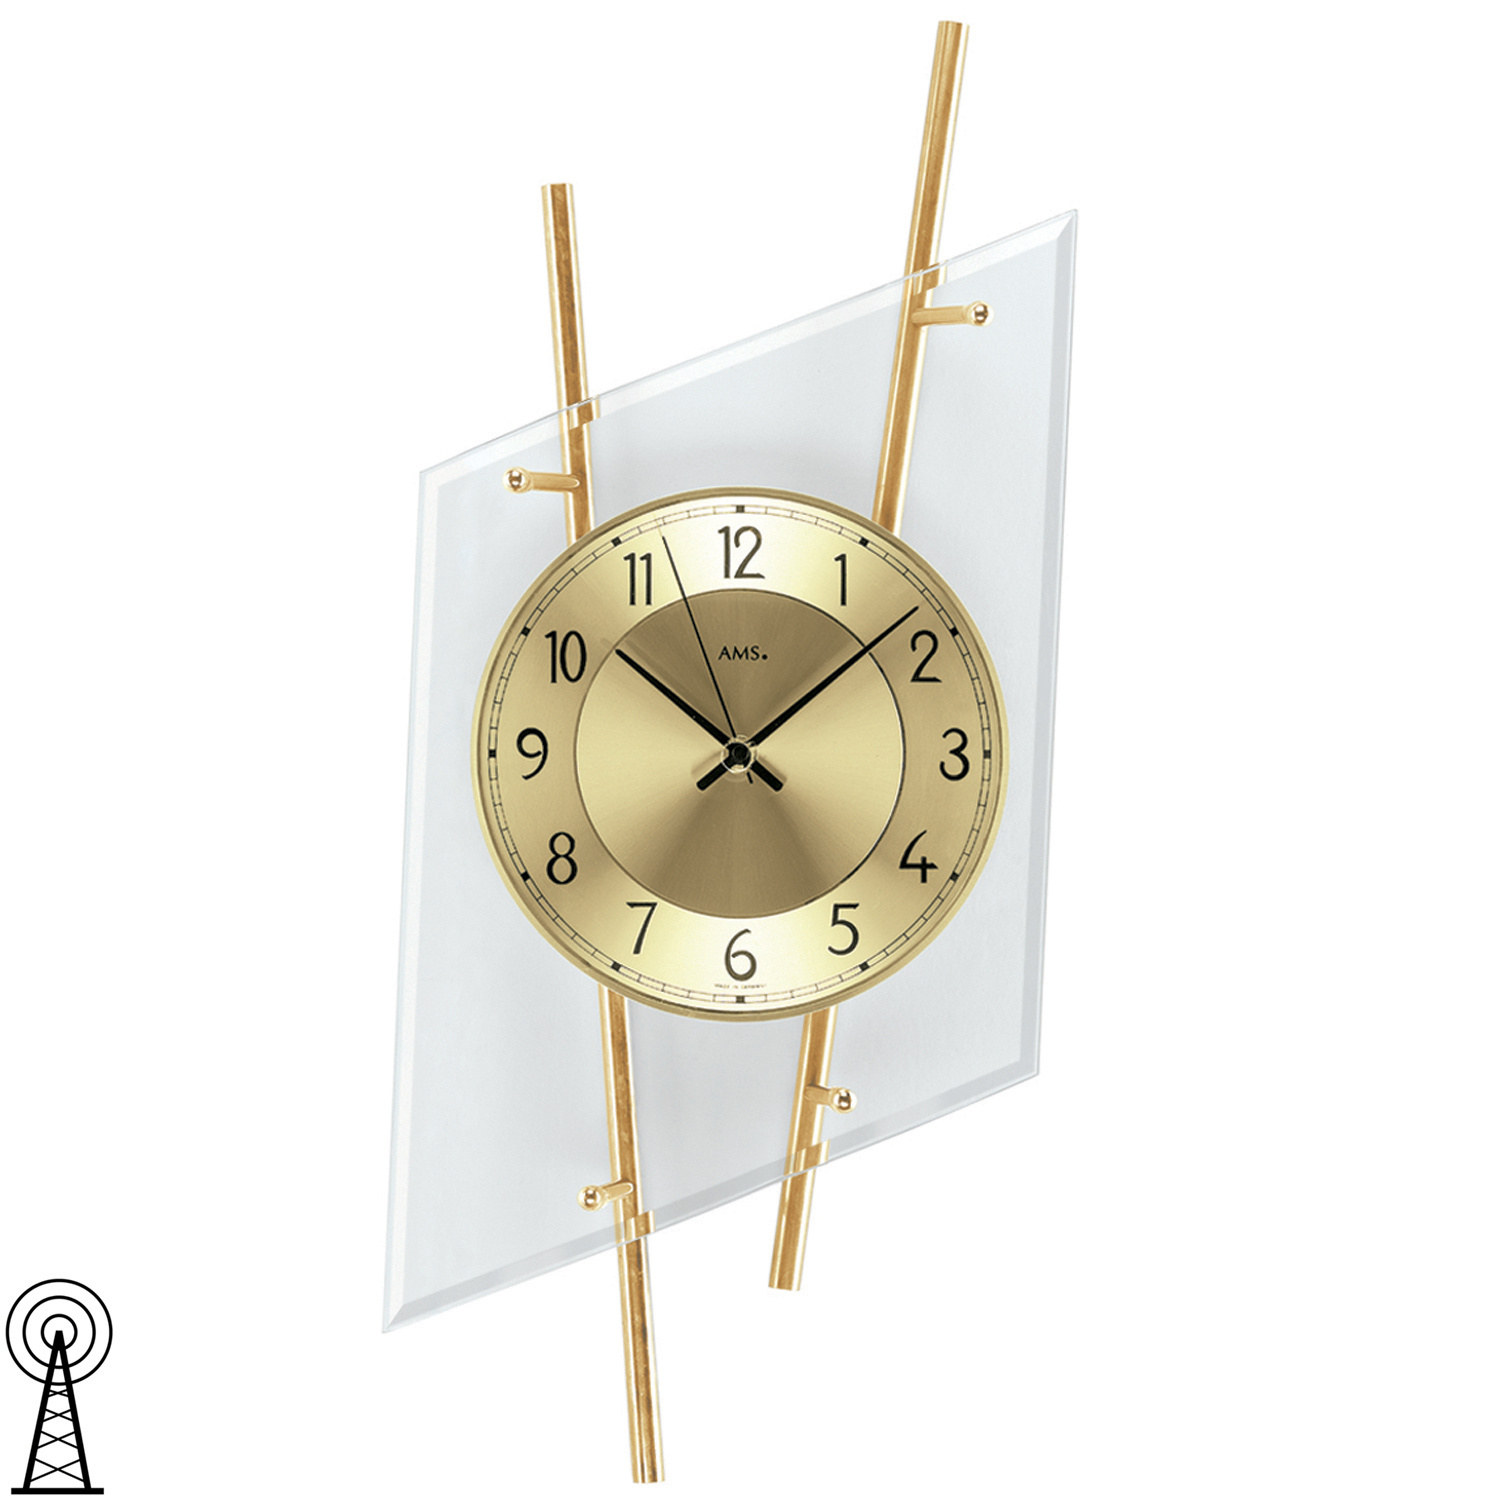 Ams Wanduhren Wohnzimmer Wanduhr Glas Great Wanduhr Glas Modern With Tittle And Home